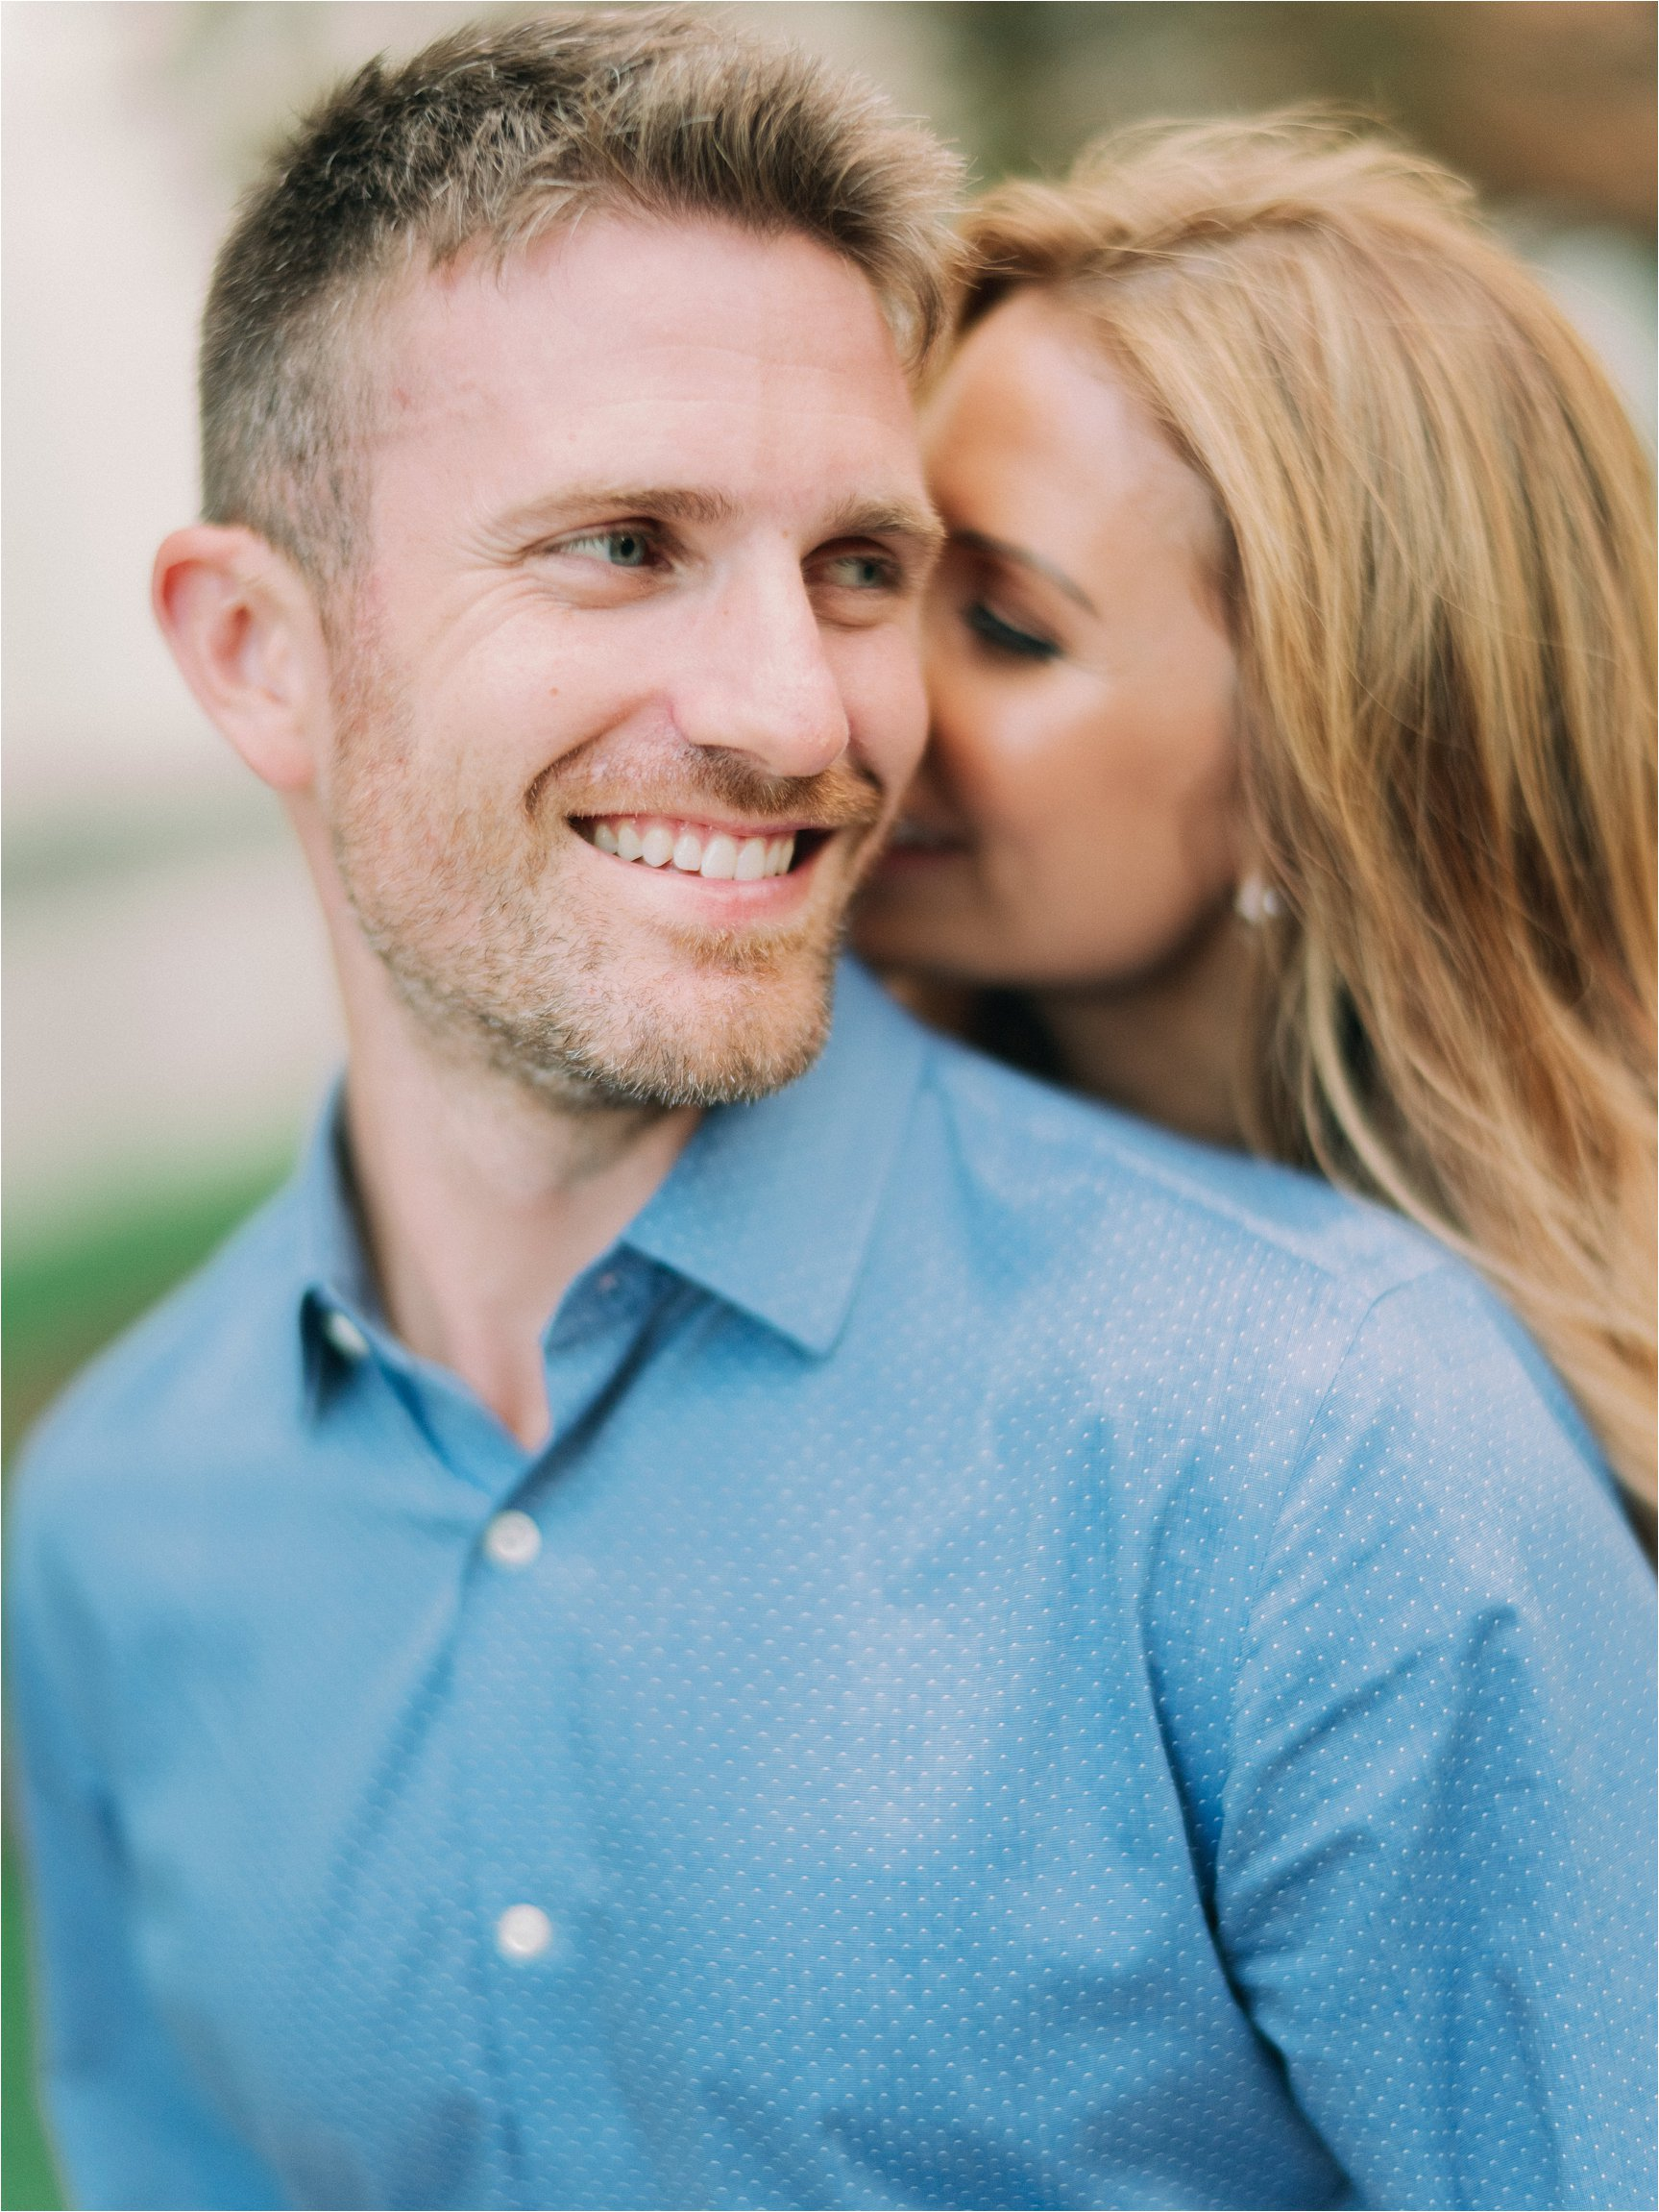 Philly_Engagement_Shoot192.JPG